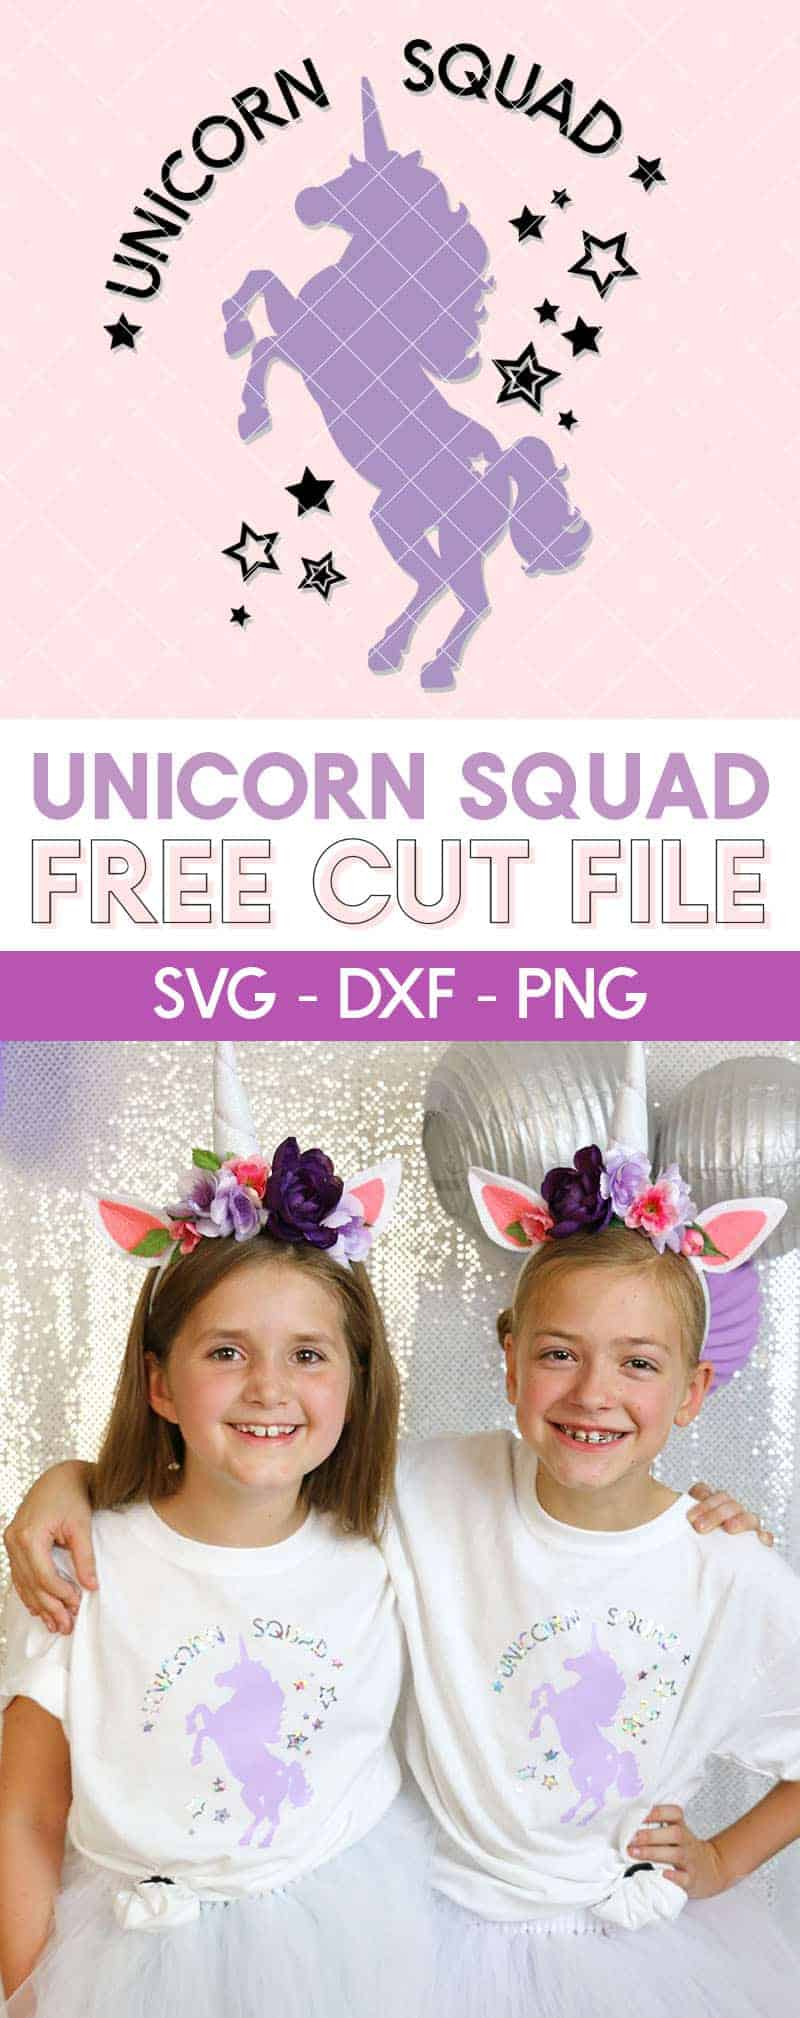 unicorn-squad-free-cut-file